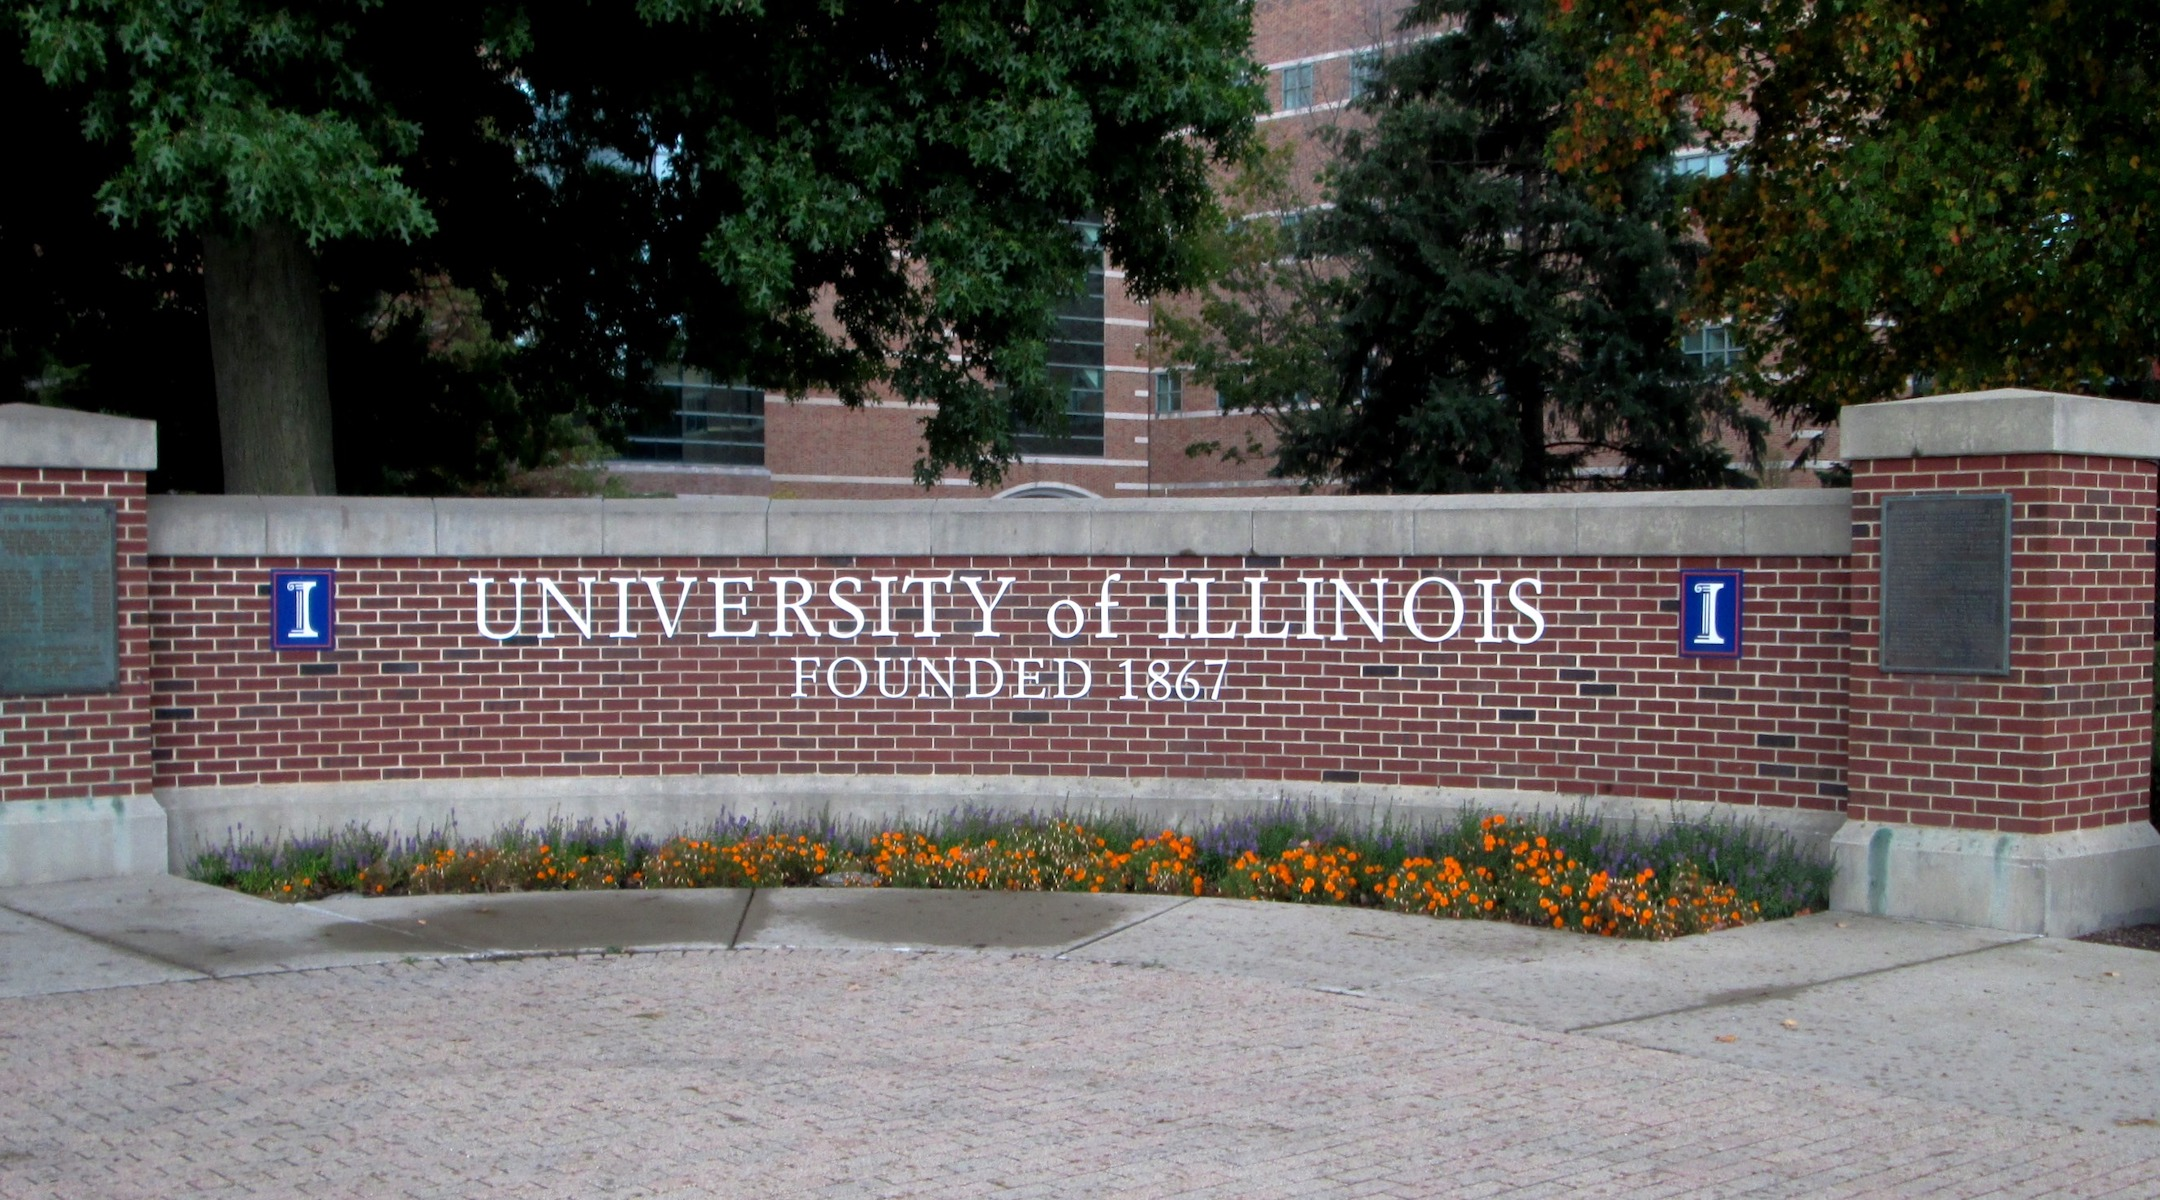 Jewish students at U Illinois 'faced unrelenting campaign of anti-Semitic harassment,' complaint says